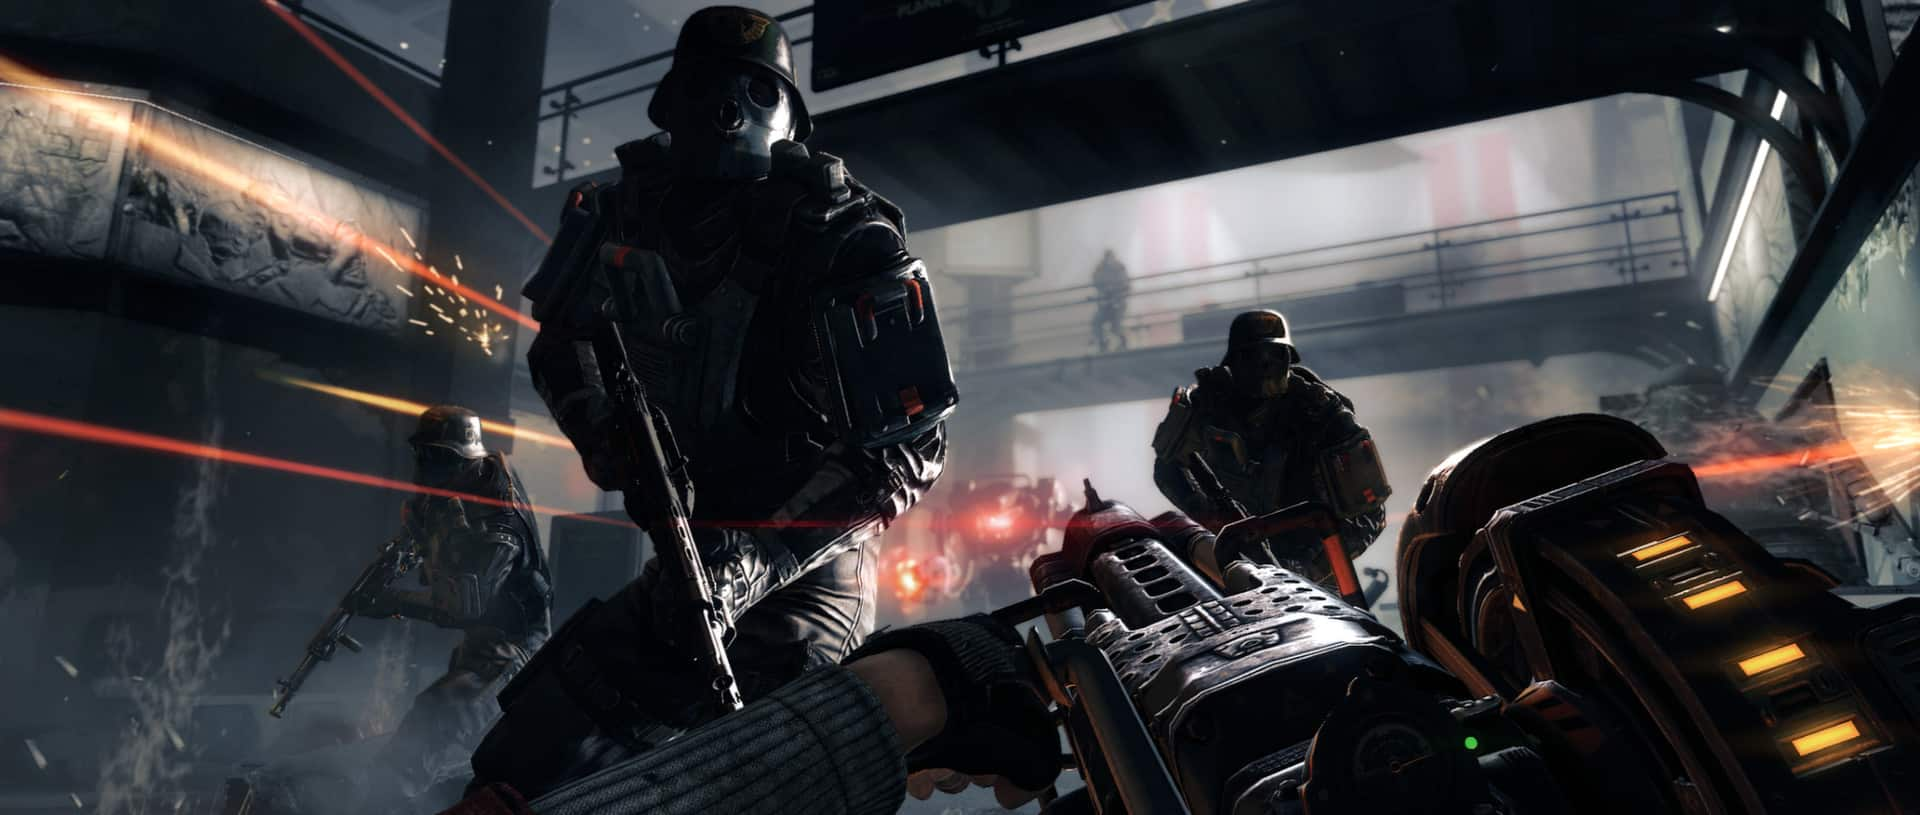 Wolfenstein: The New Order Explores the War Against Trauma with the disabled and Nazis Bethesda Machine Games